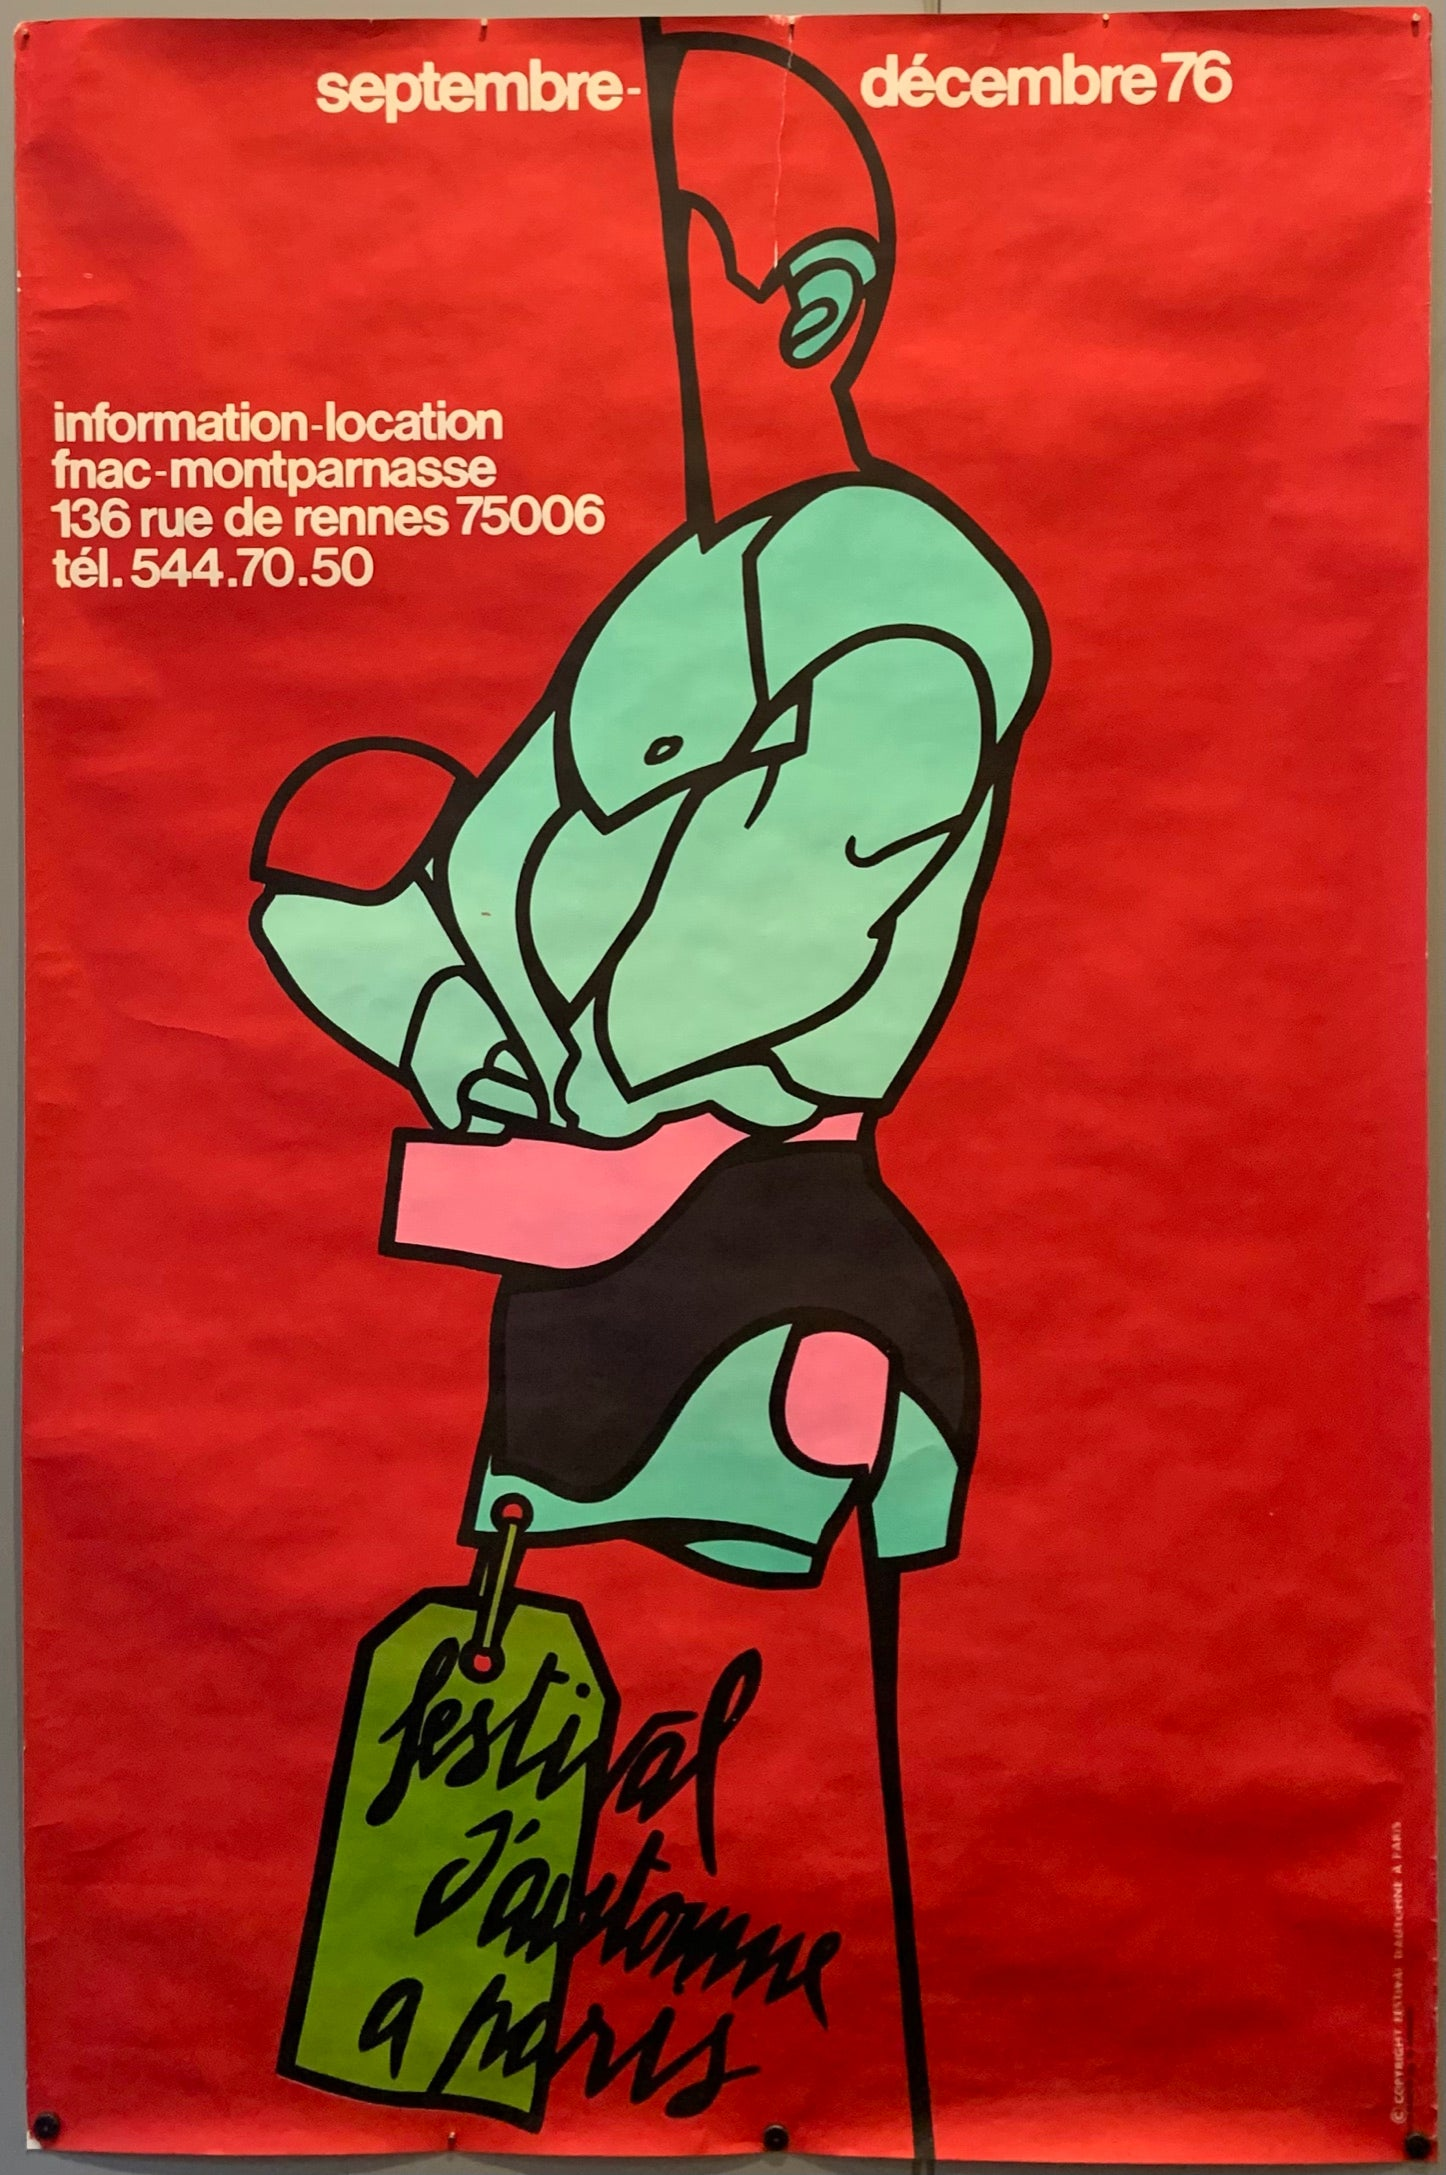 A poster for an autumnal festival in Paris, illustrated with a turquoise male mannequin.